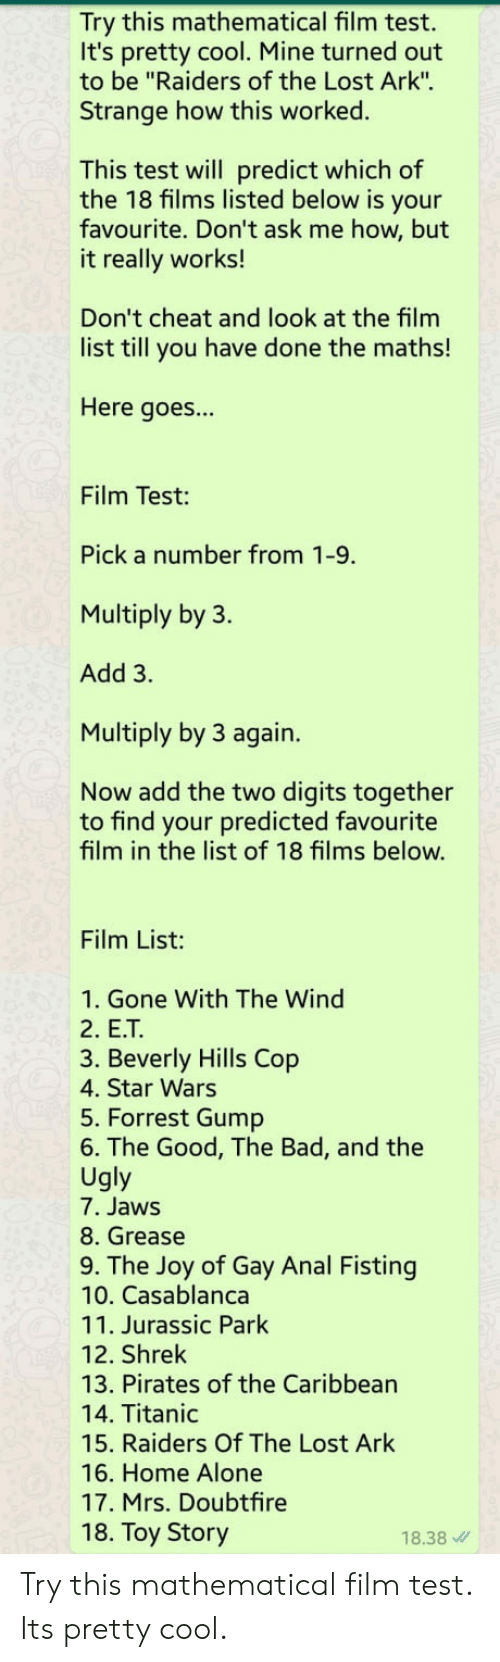 "Fisting: Try this mathematical film test.  It's pretty cool. Mine turned out  to be ""Raiders of the Lost Ark"".  Strange how this worked.  This test will predict which of  the 18 films listed below is your  favourite. Don't ask me how, but  it really works!  Don't cheat and look at the film  list till you have done the maths!  Here goes...  Film Test:  Pick a number from 1-9.  Multiply by 3.  Add 3.  Multiply by 3 again.  Now add the two digits together  to find your predicted favourite  film in the list of 18 films below.  Film List:  1. Gone With The Wind  2. E.T  3. Beverly Hills Cop  4. Star Wars  5. Forrest Gump  6. The Good, The Bad, and the  Ugly  7. Jaws  8. Grease  9. The Joy of Gay Anal Fisting  10. Casablanca  11. Jurassic Park  12. Shrek  13. Pirates of the Caribbean  14. Titanic  15. Raiders Of The Lost Ark  16. Home Alone  17. Mrs. Doubtfire  18. Toy Story  18.38 Try this mathematical film test. Its pretty cool."